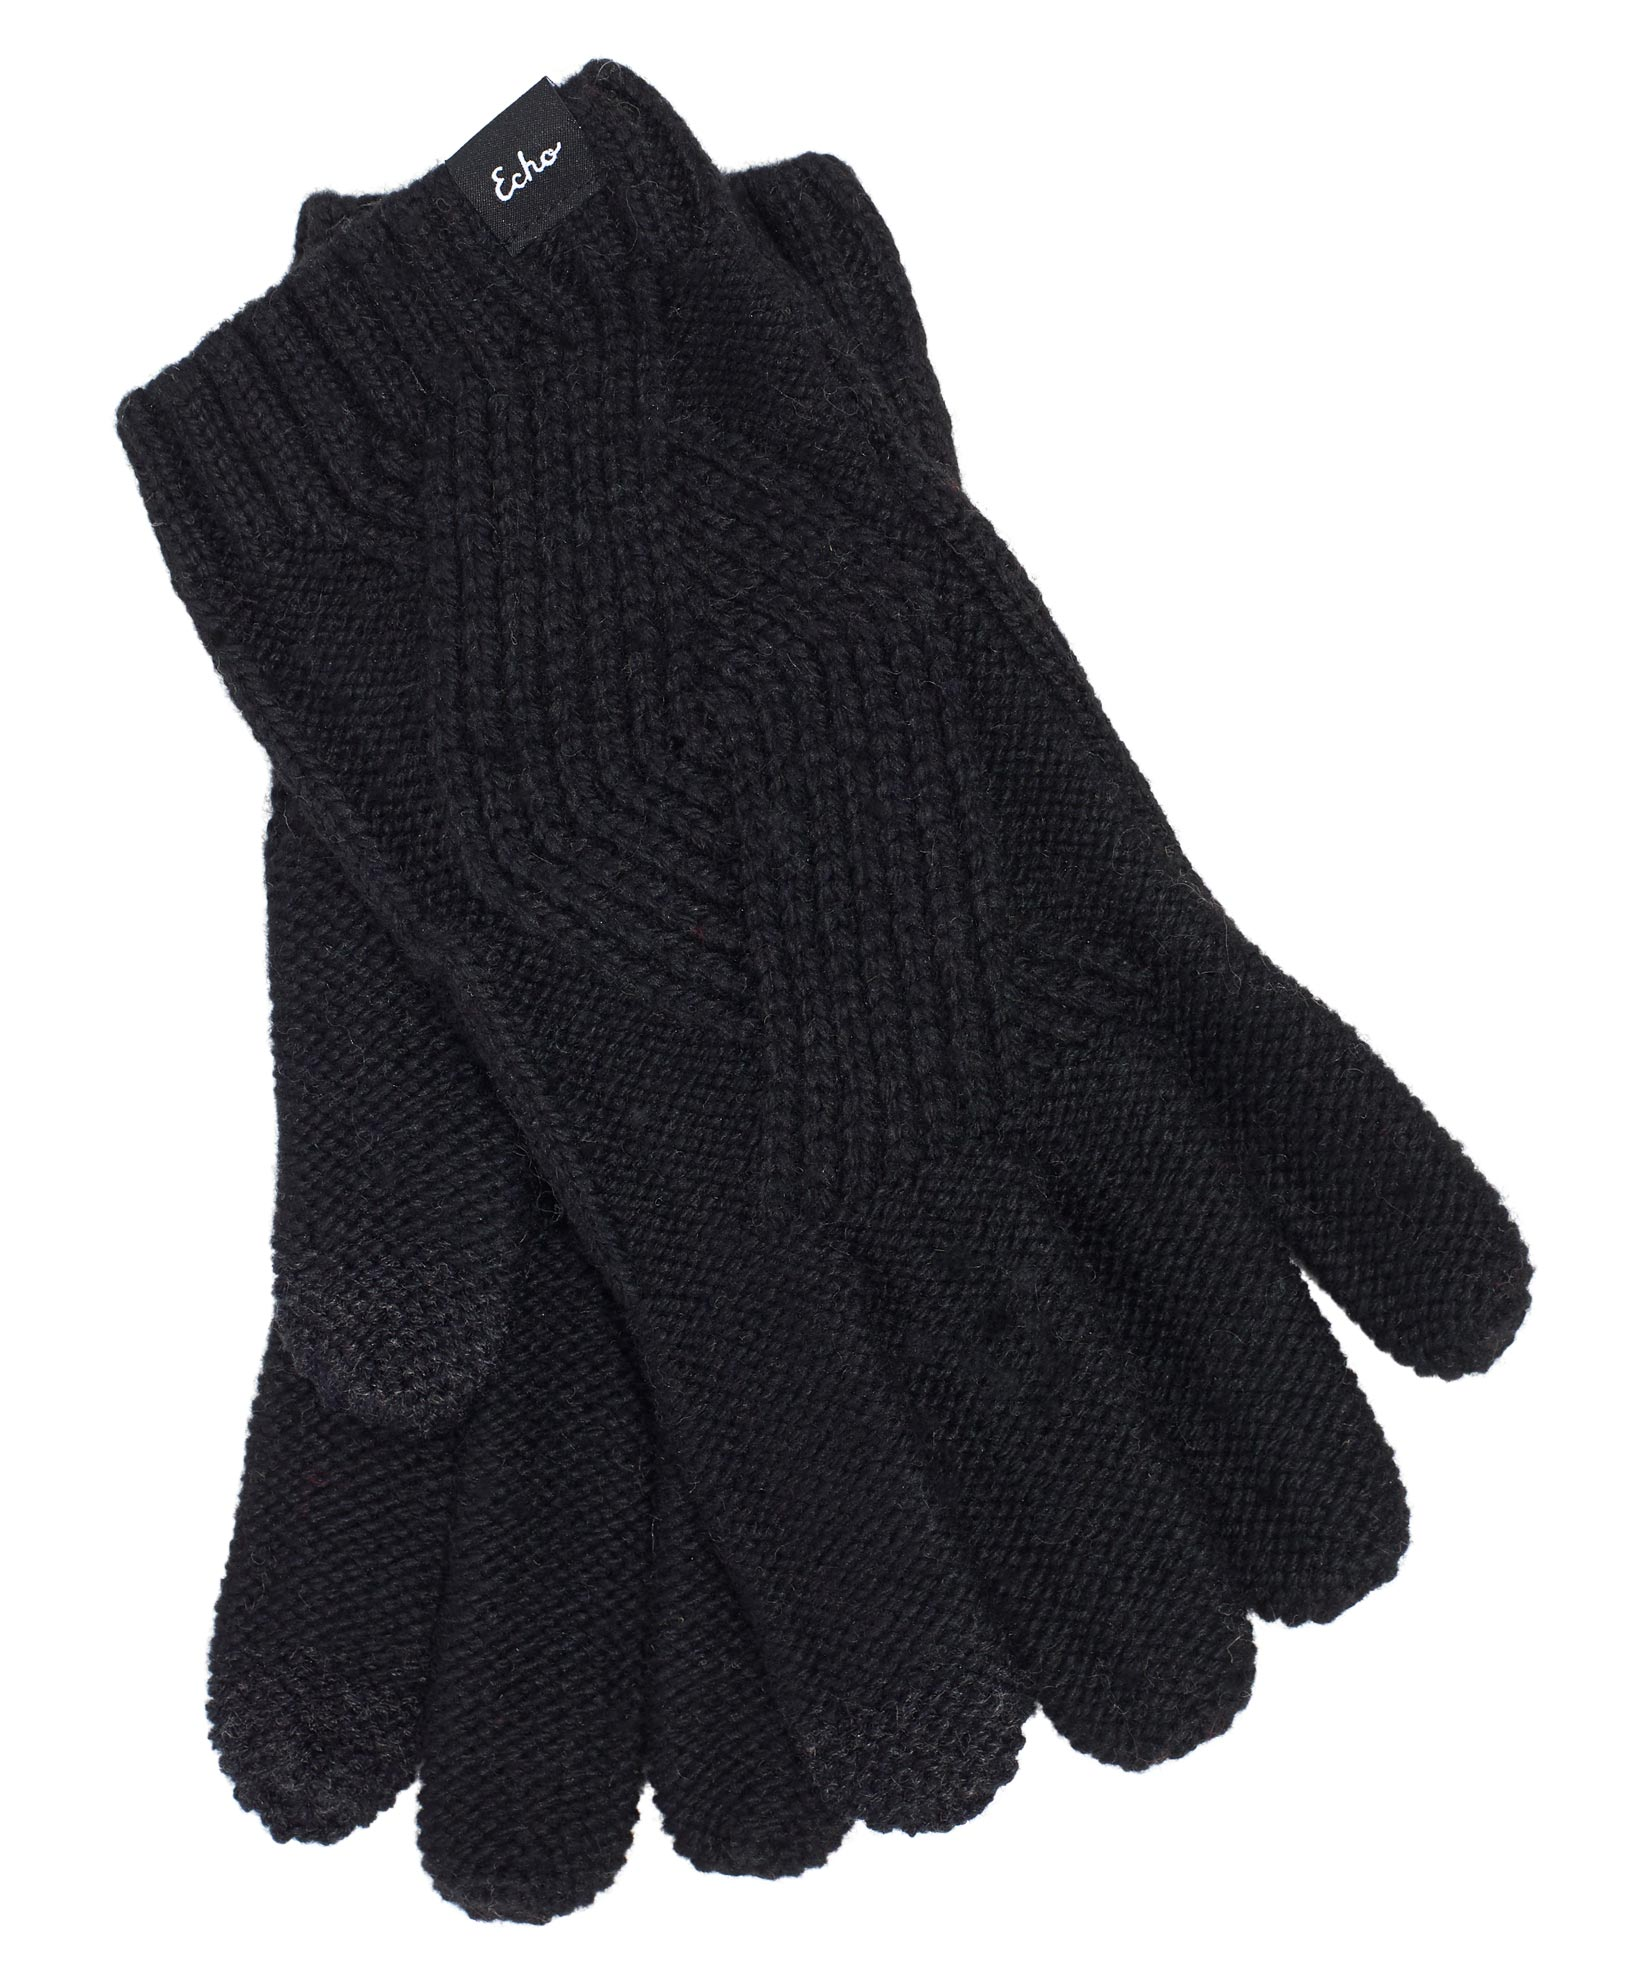 Black - Recycled Cable Glove